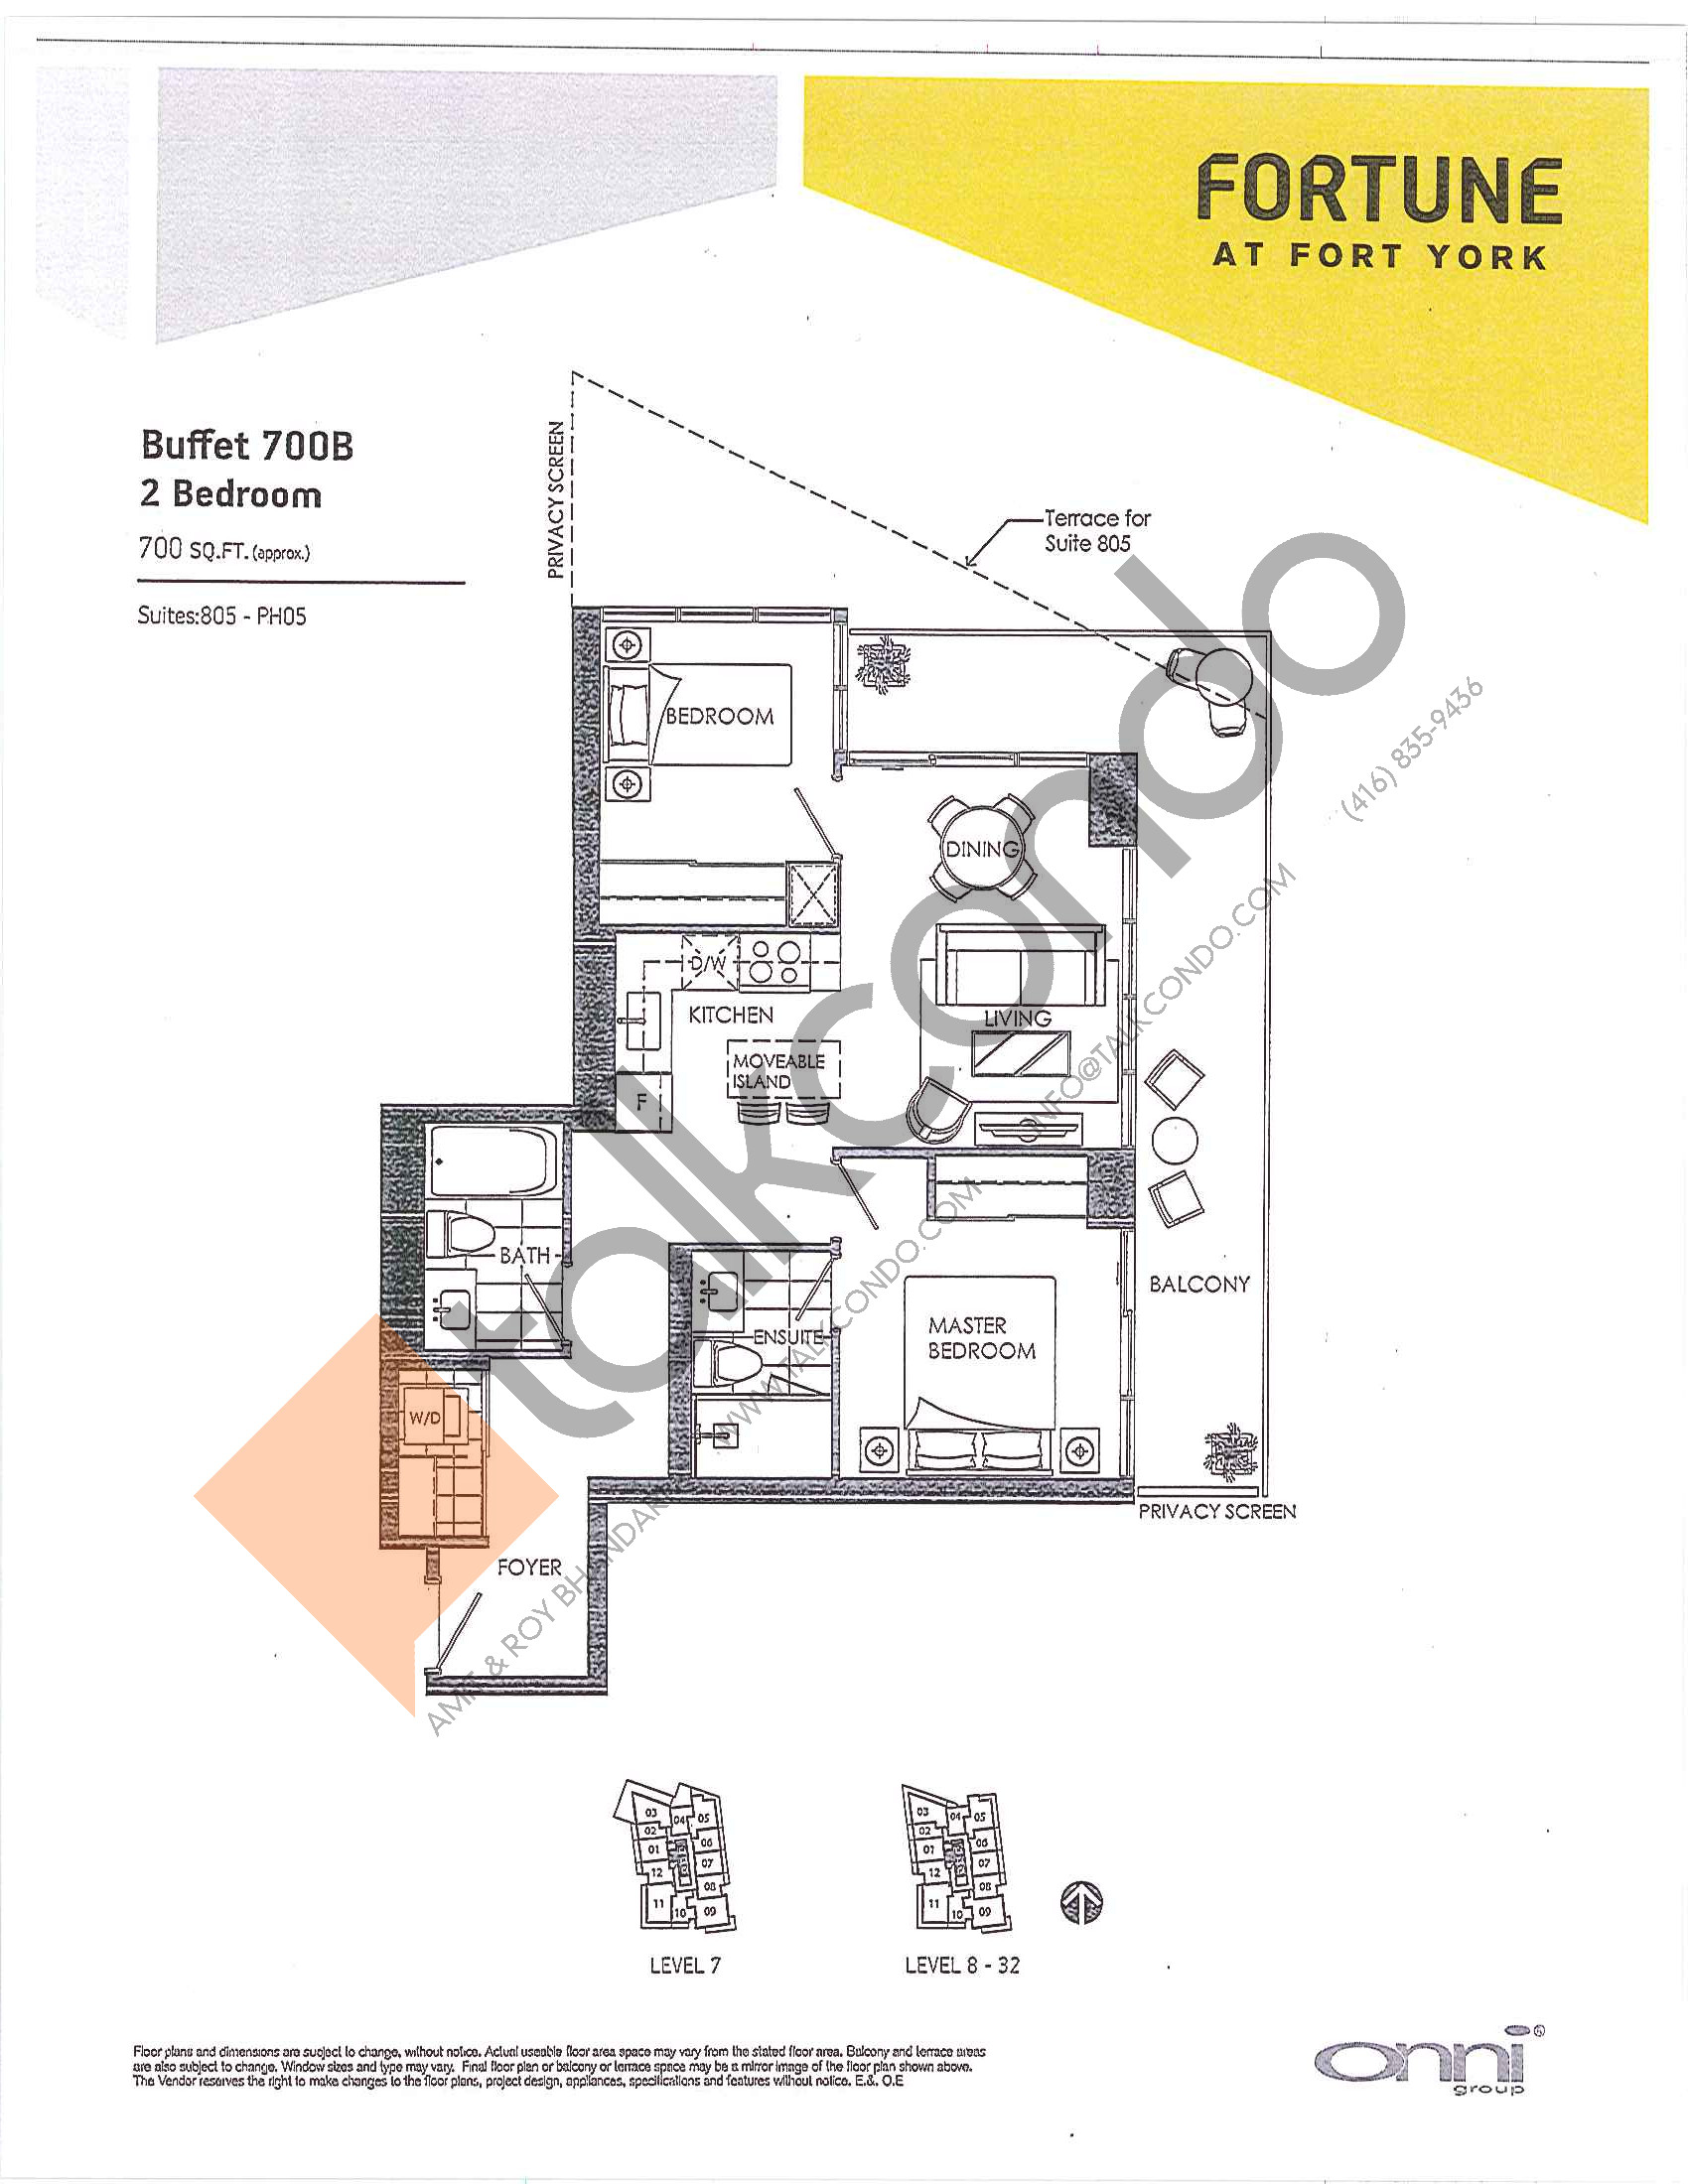 Buffet 700B Floor Plan at Fortune at Fort York - 700 sq.ft